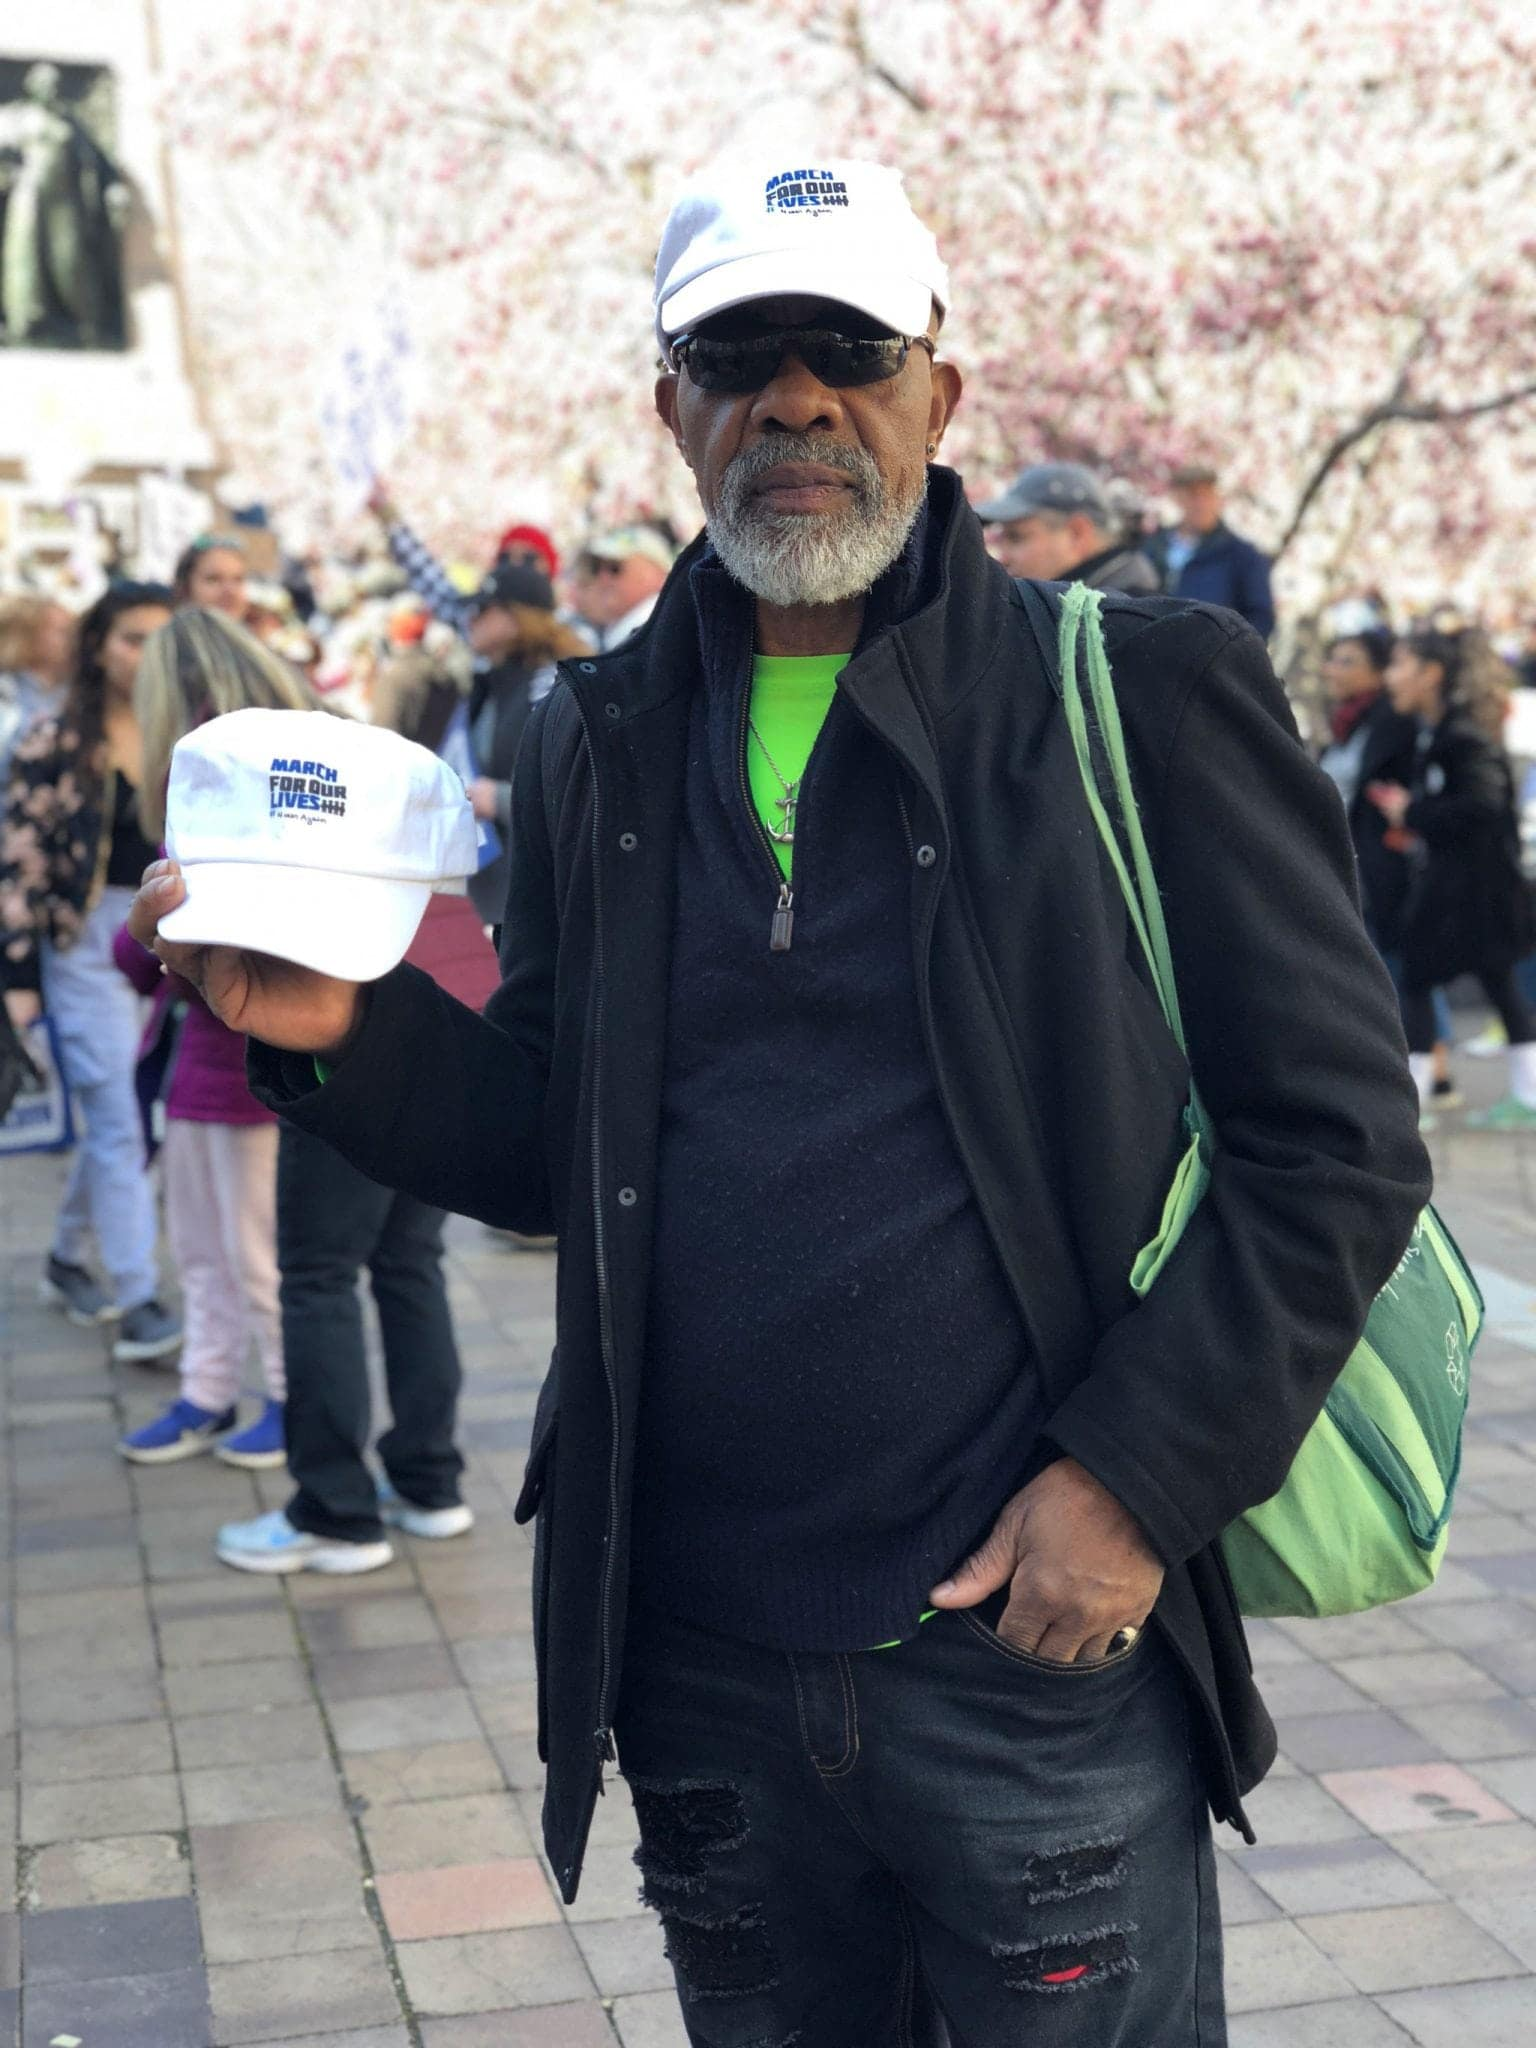 Vendor sells hat during march